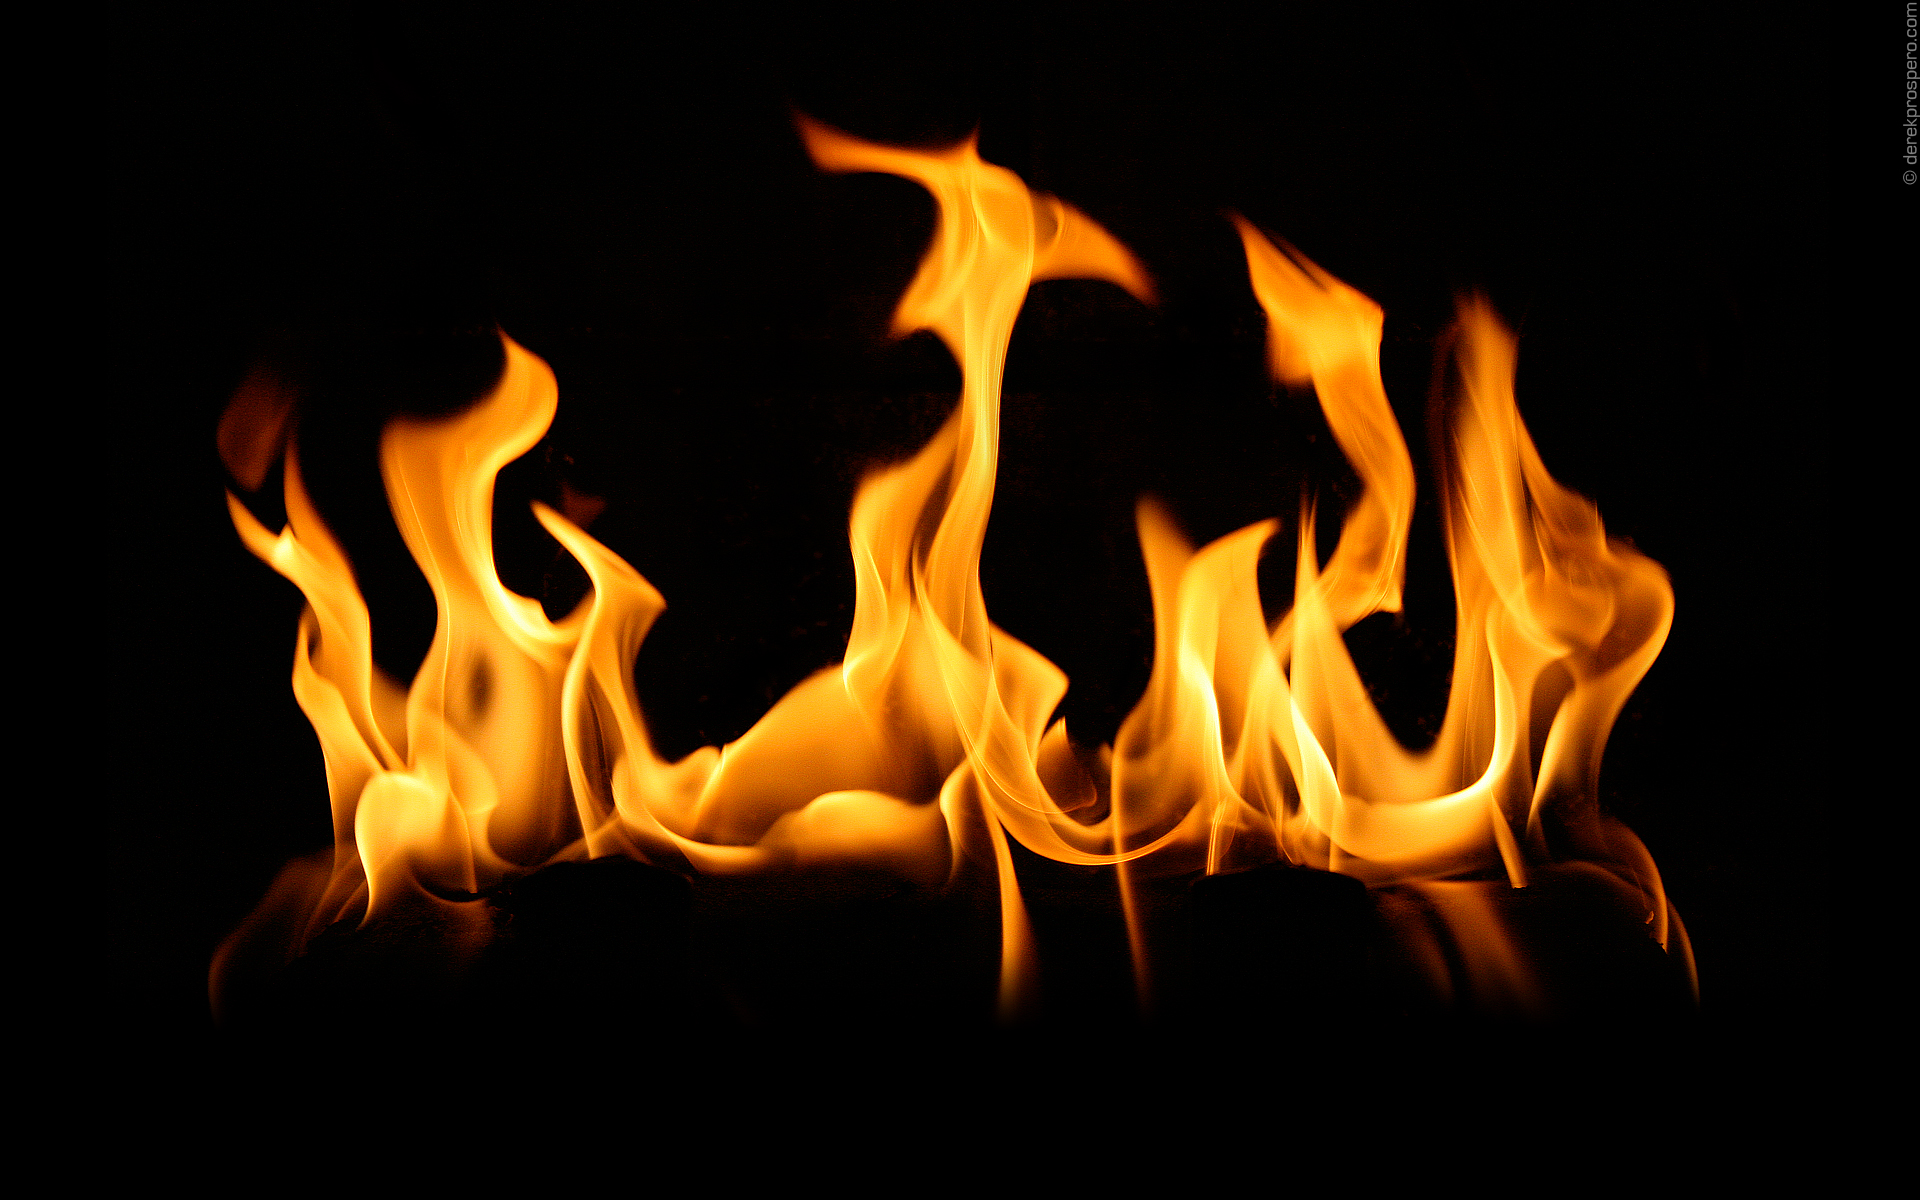 Heat clipart animated fire Animated clipart Moving Fire flames